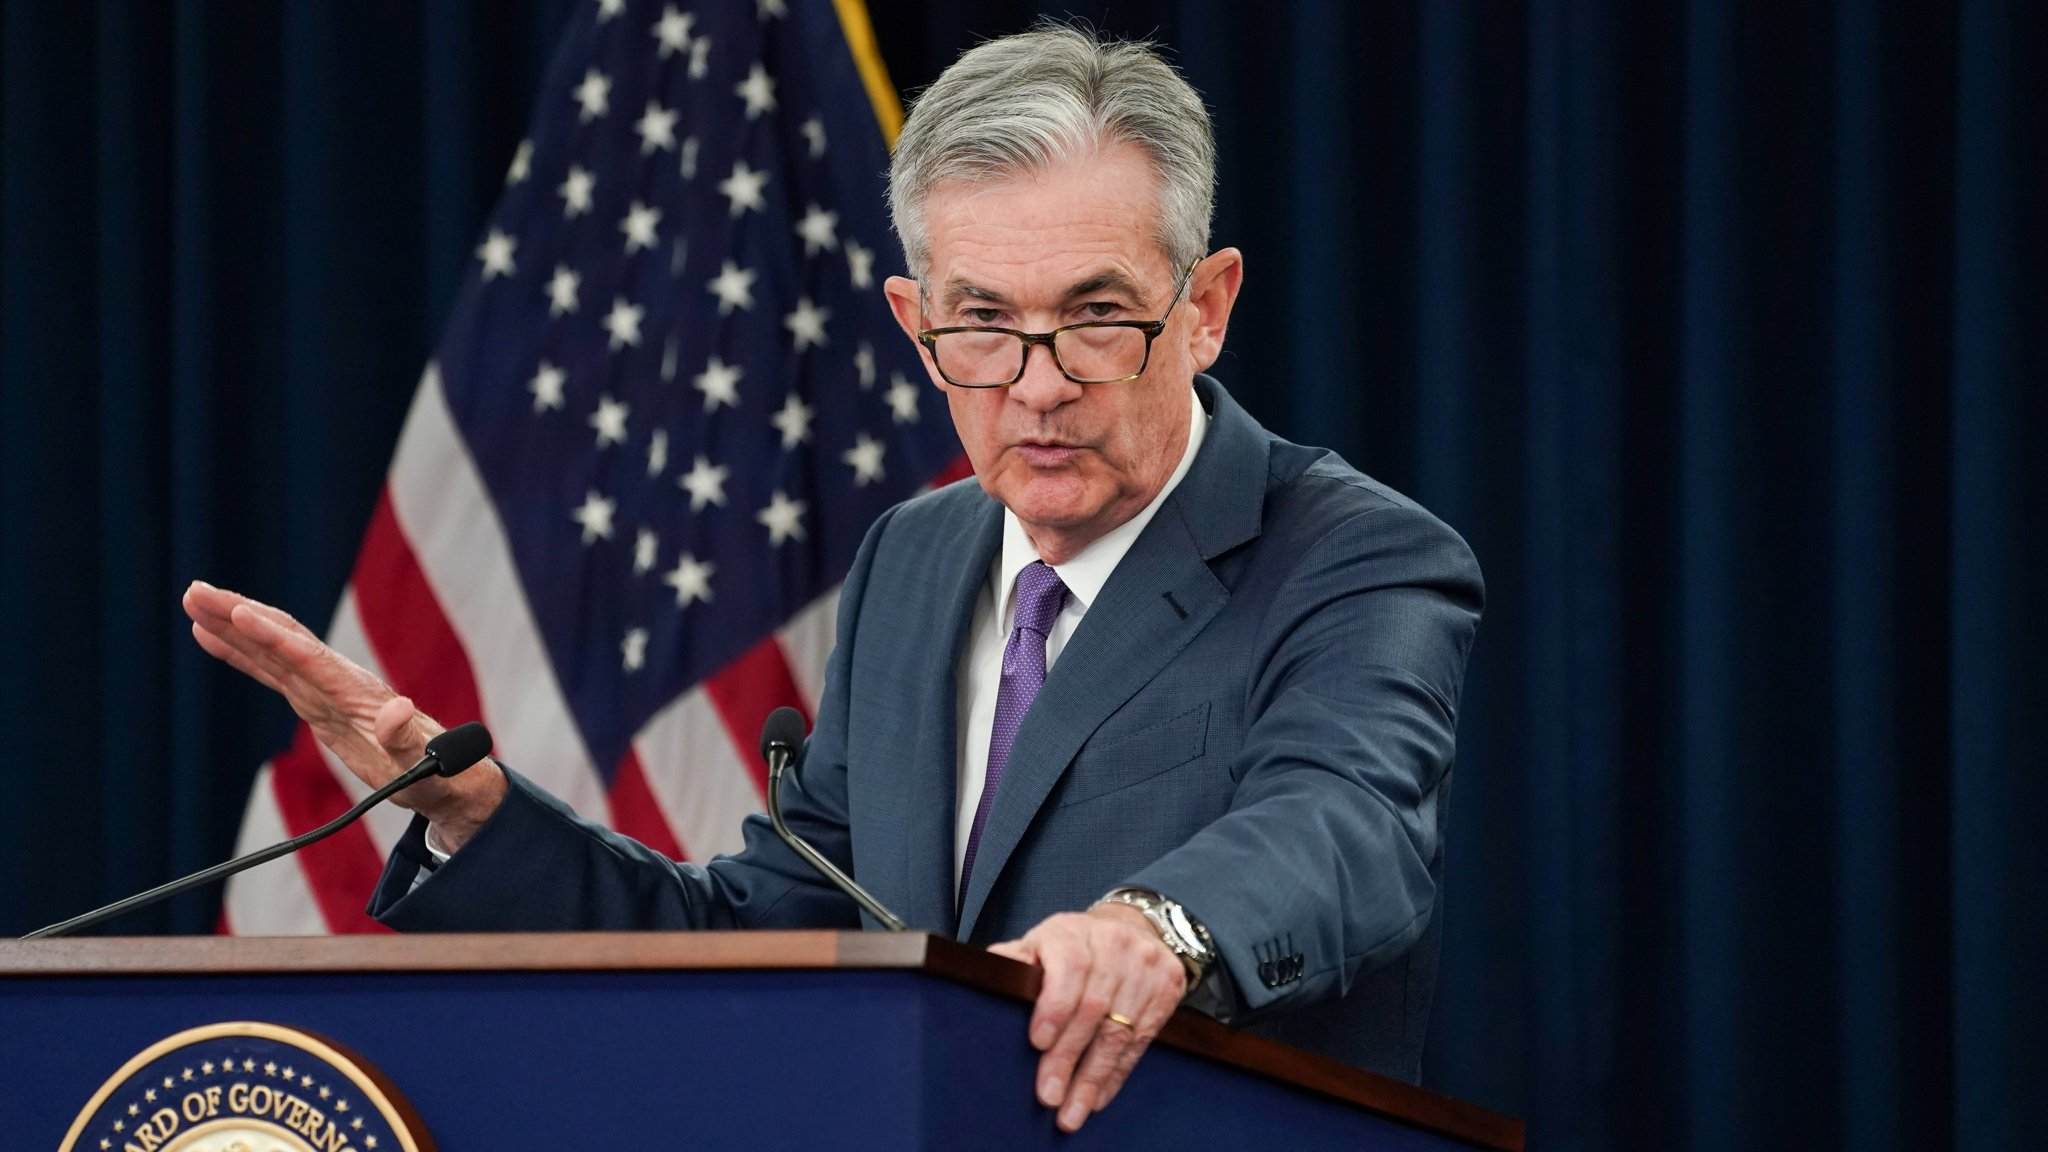 The US Federal Reserve should use forward guidance now